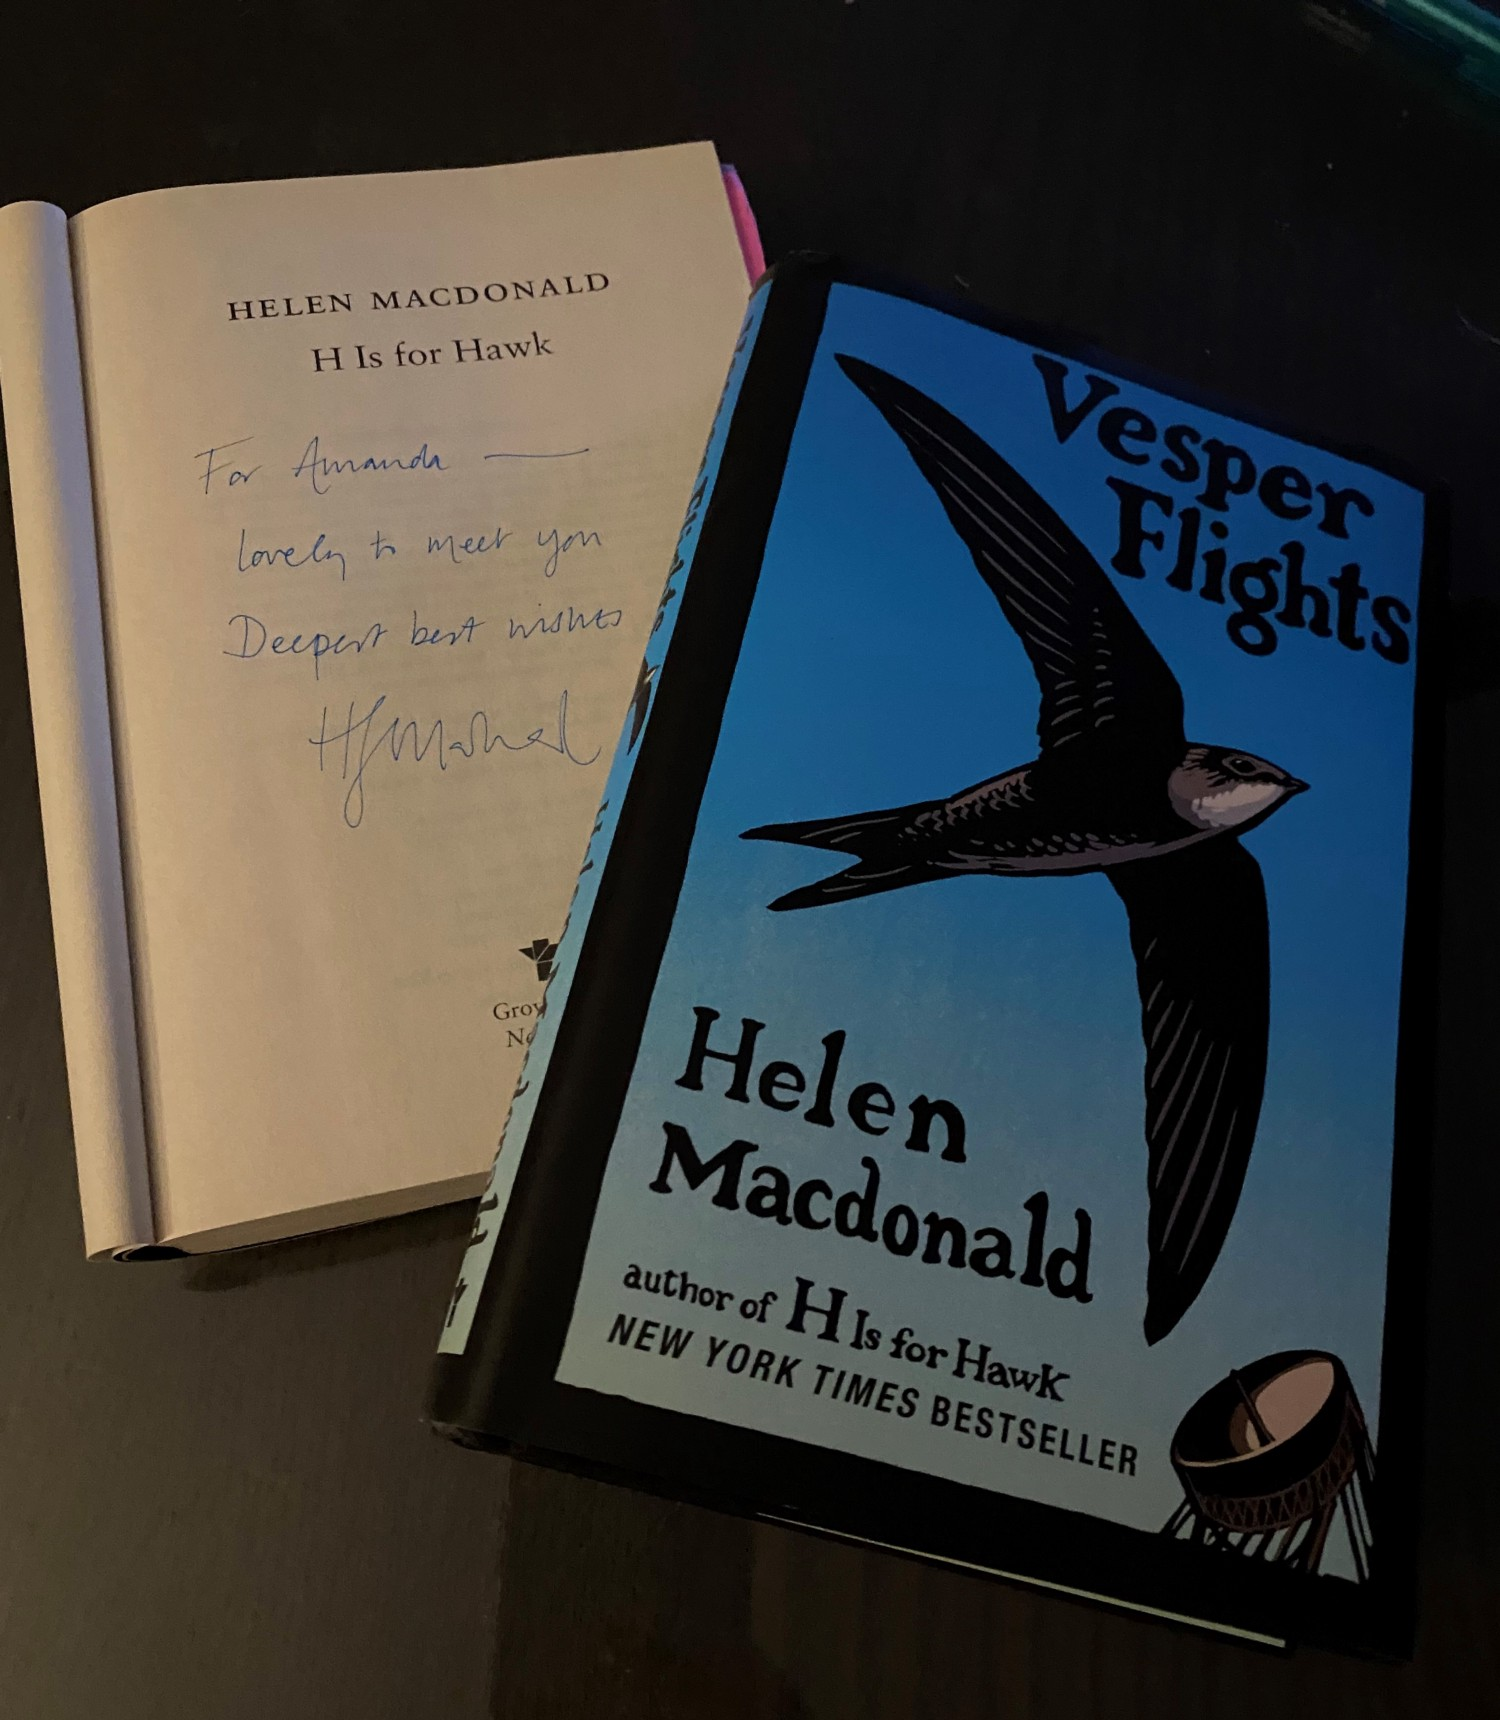 Vesper Flights by Helen Macdonald and an open H is for Hawk and signed by the author